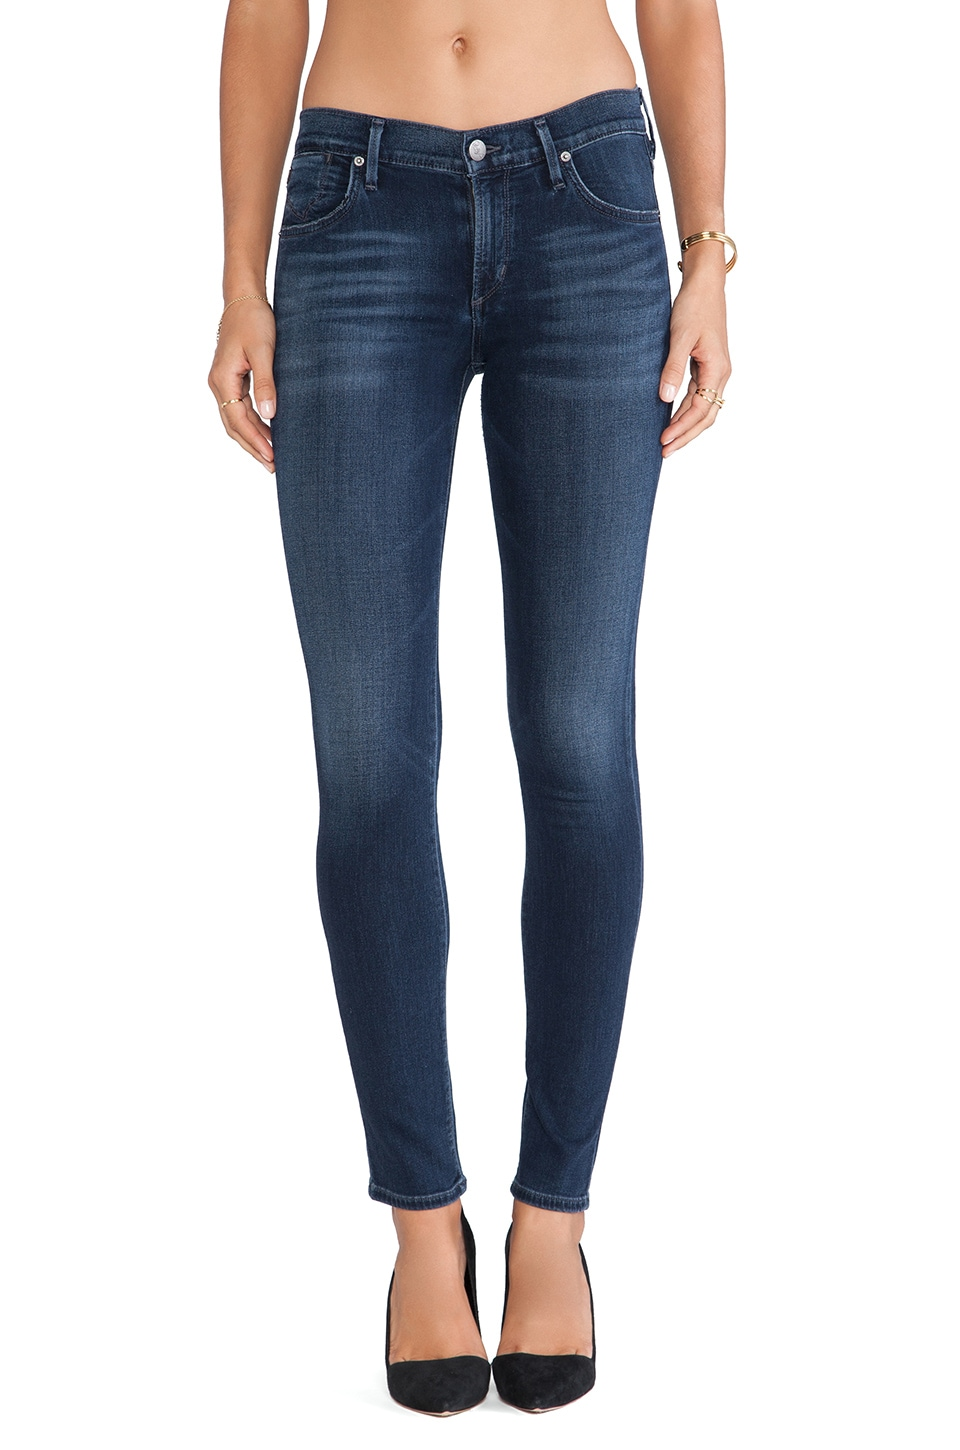 AGOLDE A Gold E Colette Skinny in Onasis